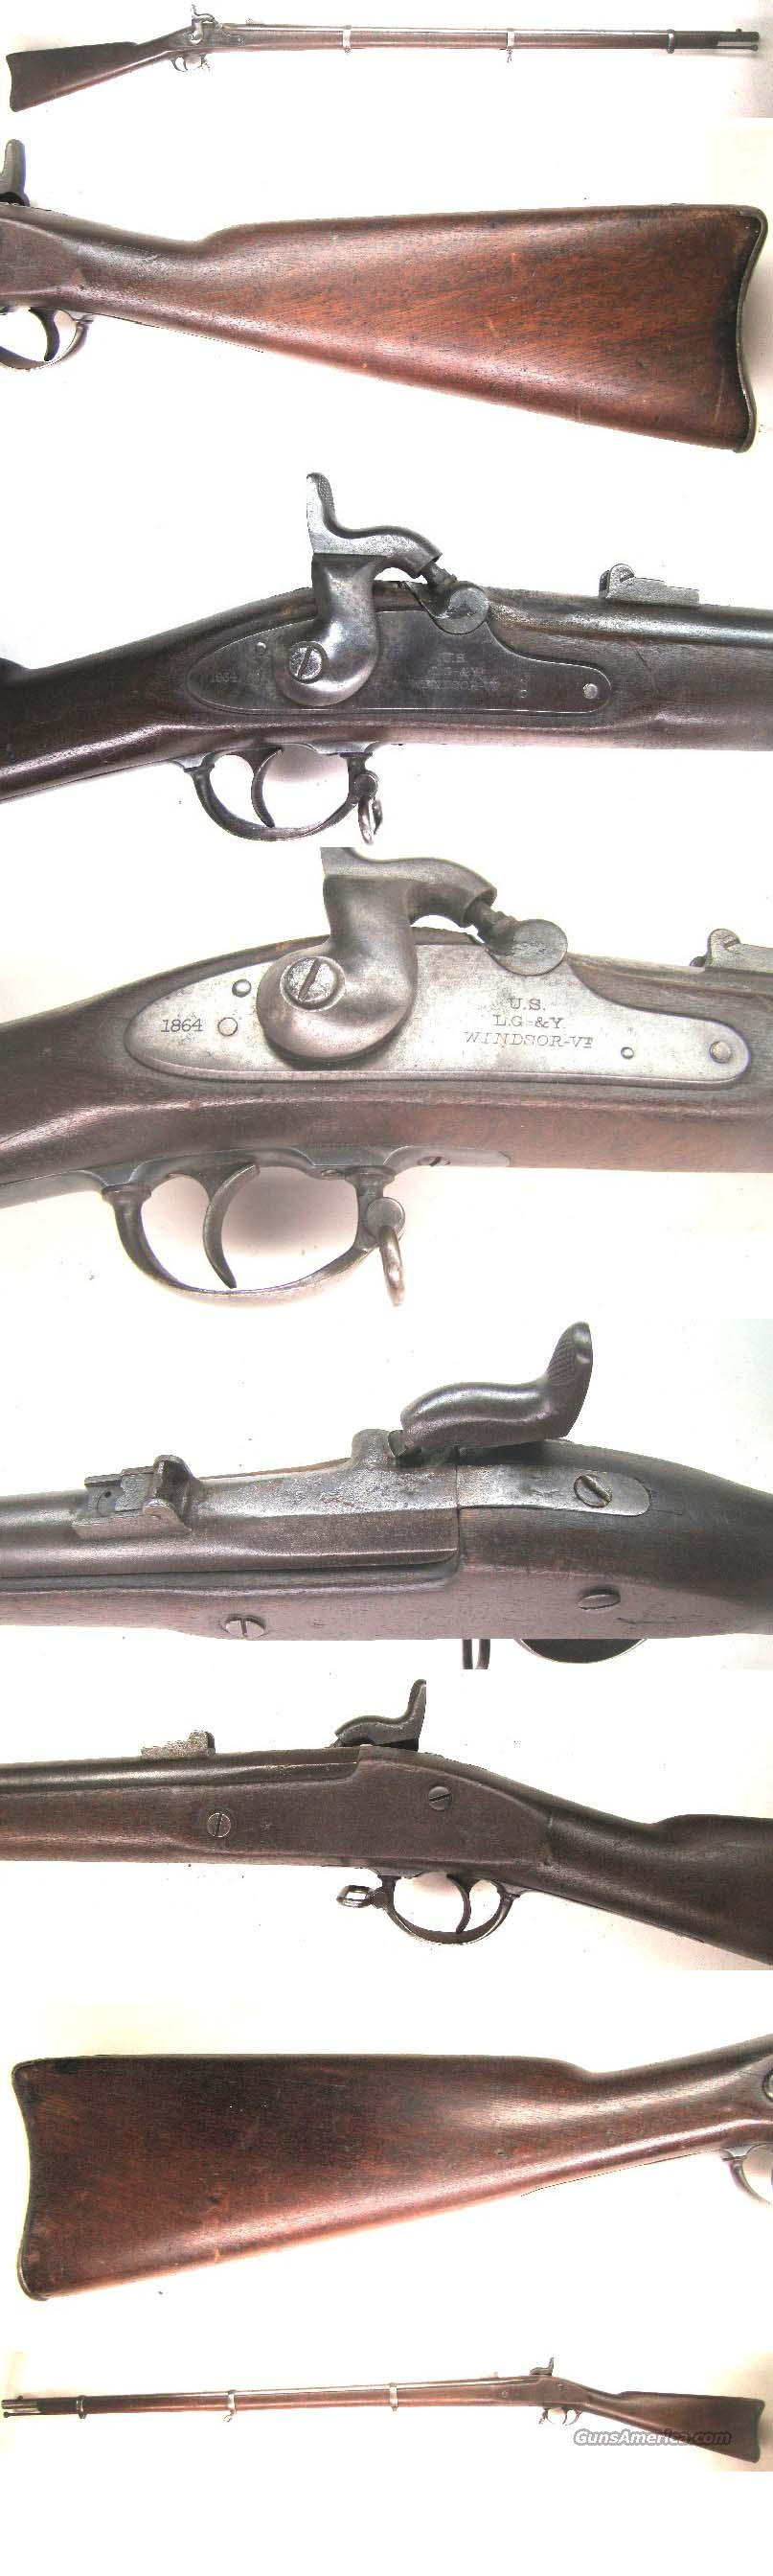 LG&Y  Civil War Special Musket  1864  Guns > Rifles > Military Misc. Rifles US > Civil War